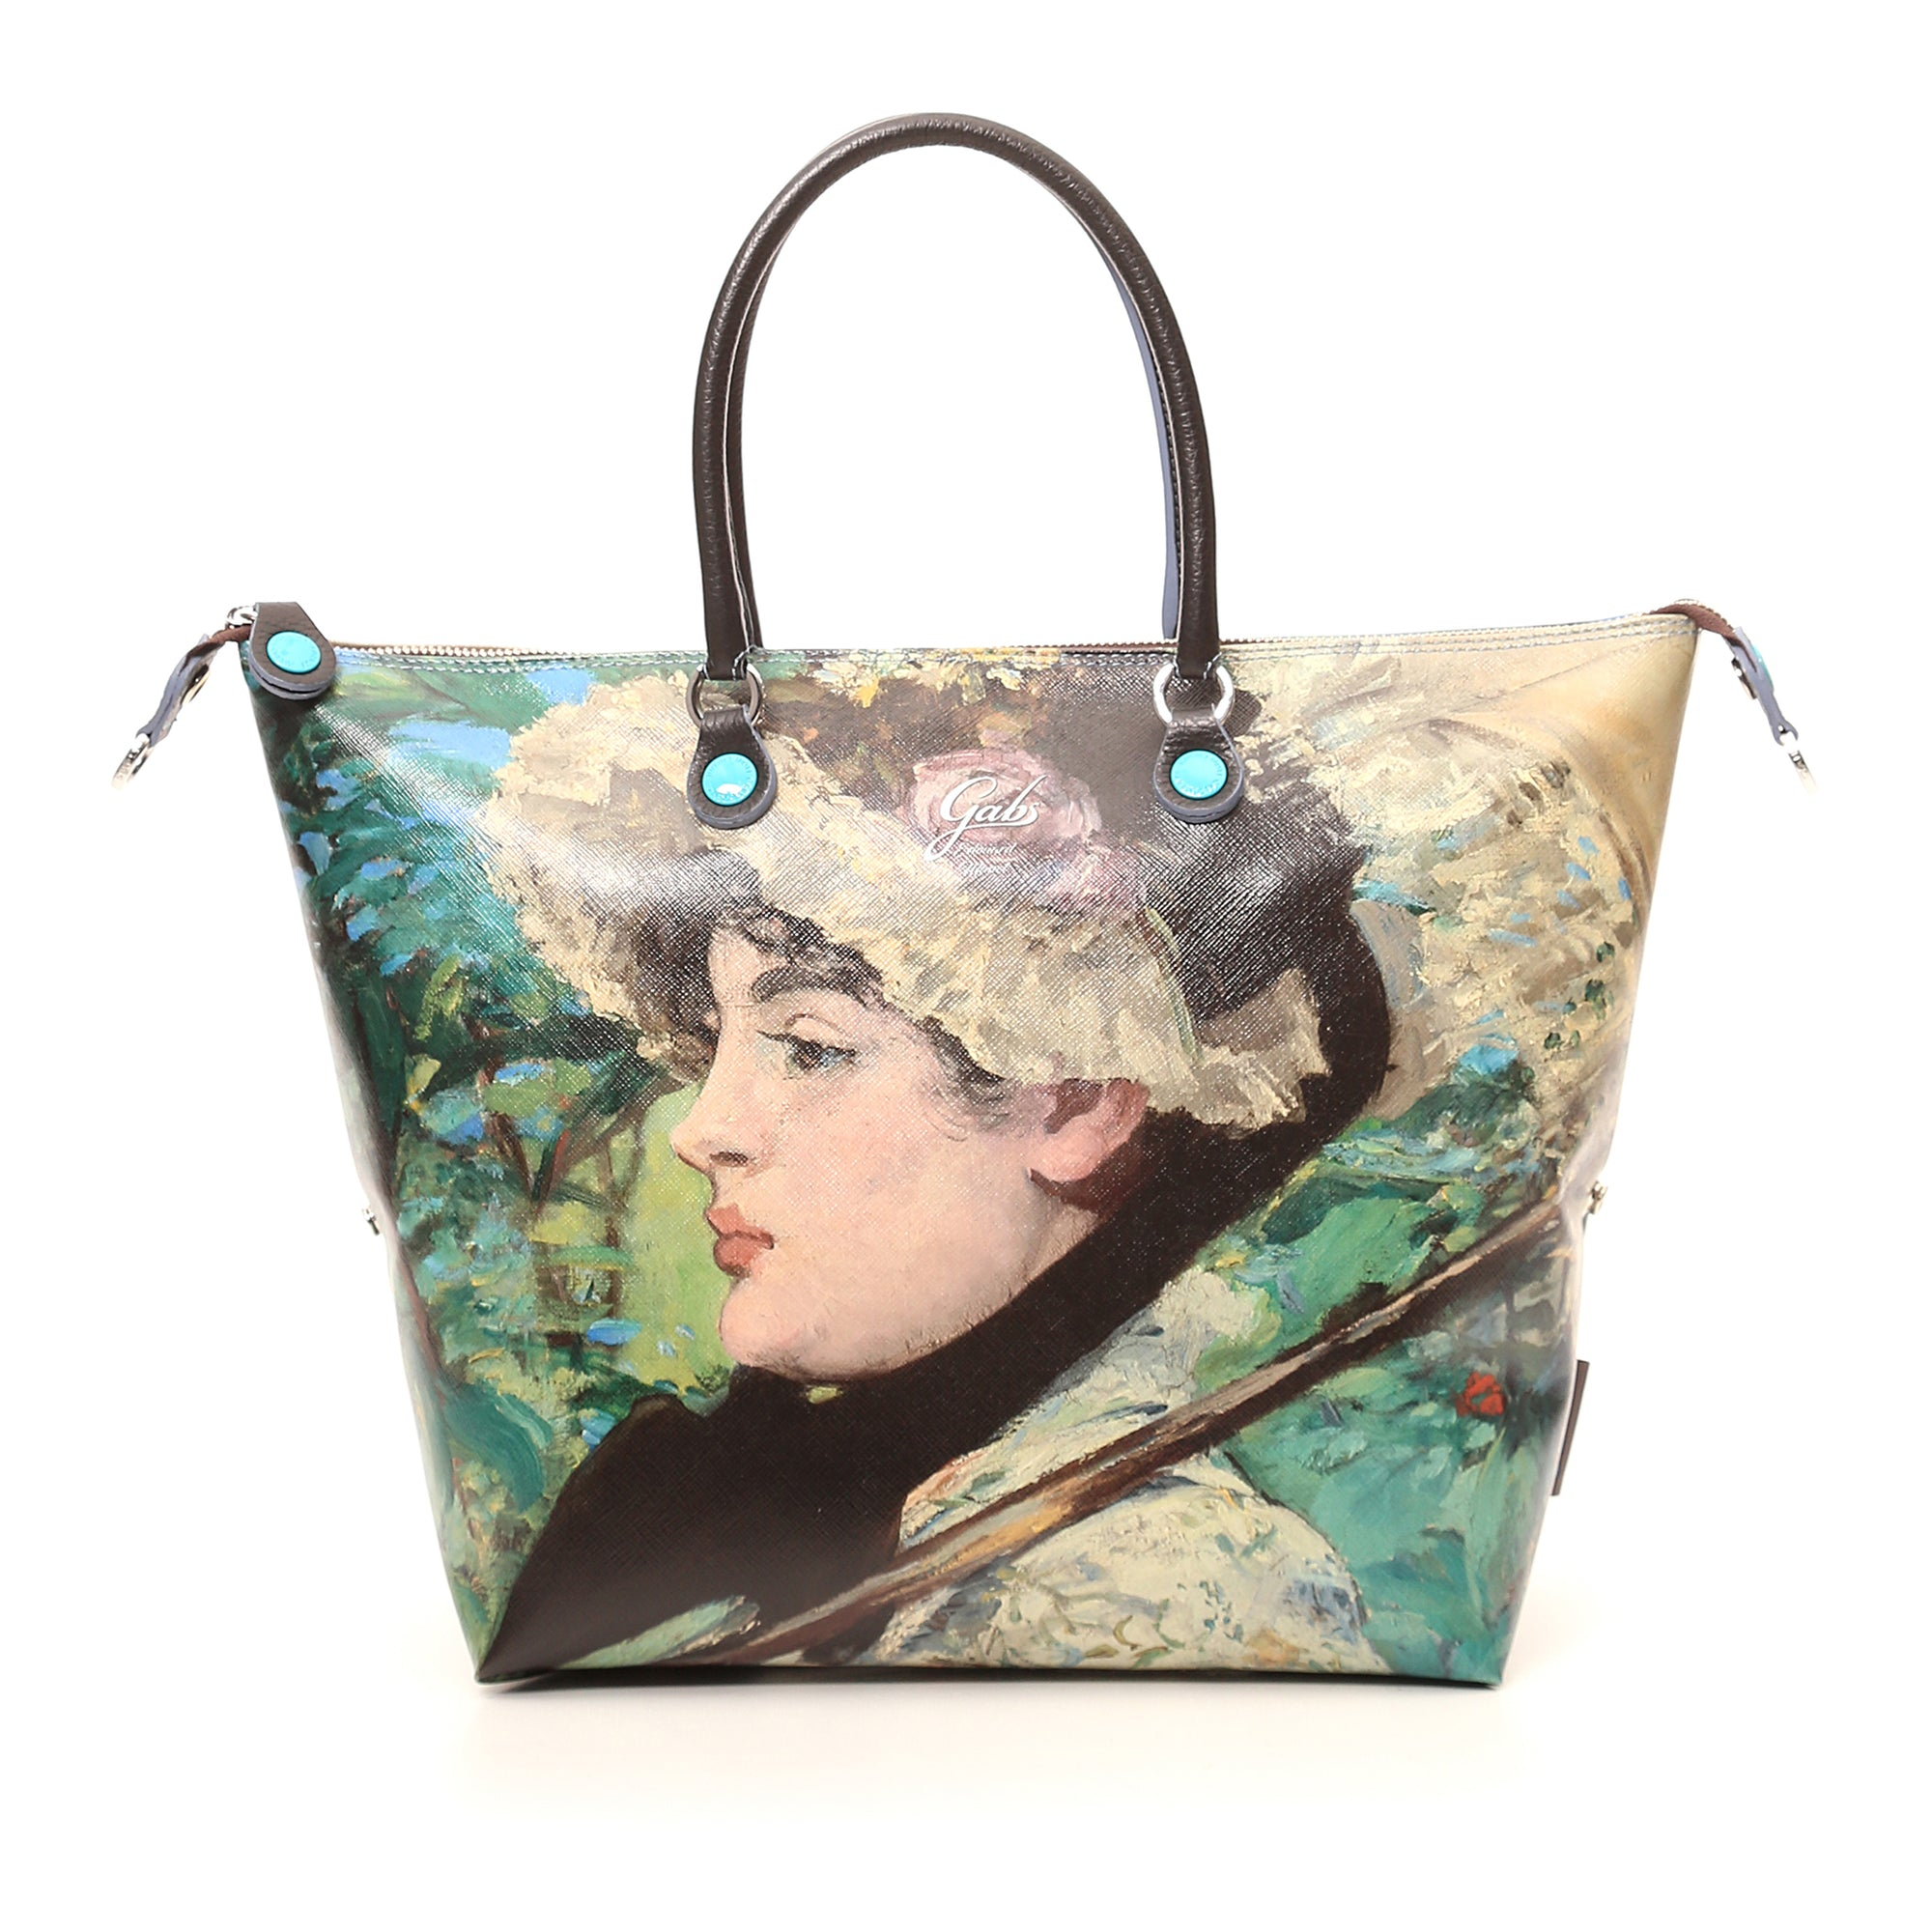 Large Convertible Hand Bag featuring Manet's Jeanne (Spring) by Gabs, Italy | Getty Store